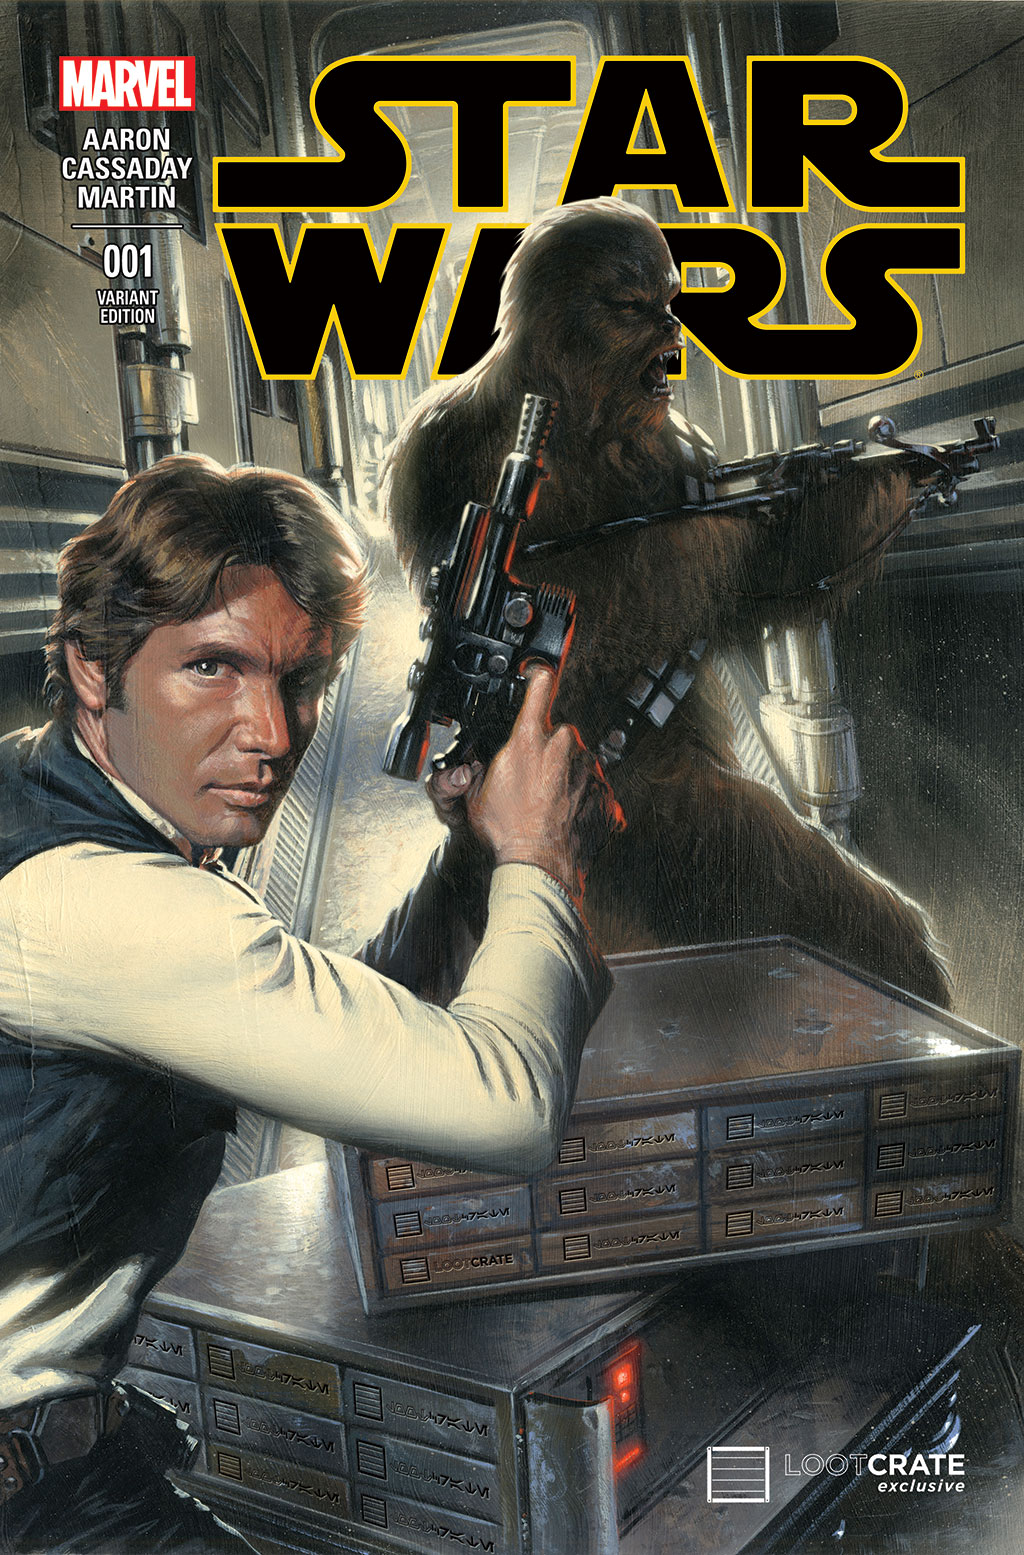 Star Wars #1 (Gabriele Dell'Otto Loot Crate Variant Cover) (14.01.2015)